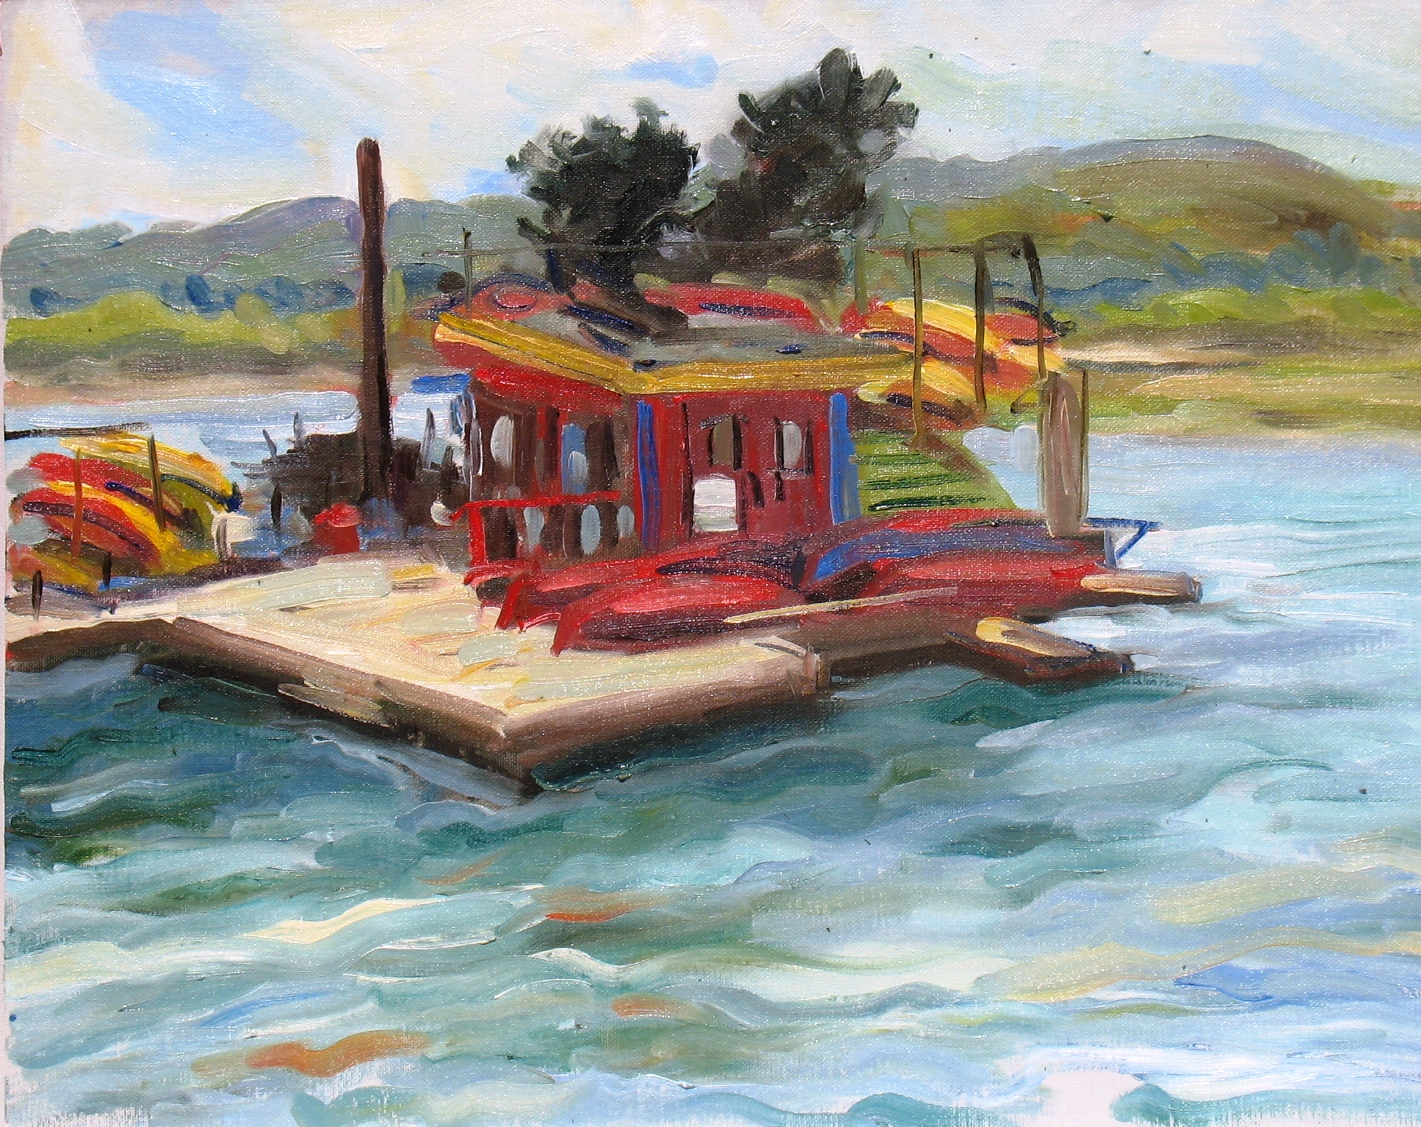 Morro Bay Kayak Shed, 16 x 20 inches, oil on canvas - UNAVAILABLE